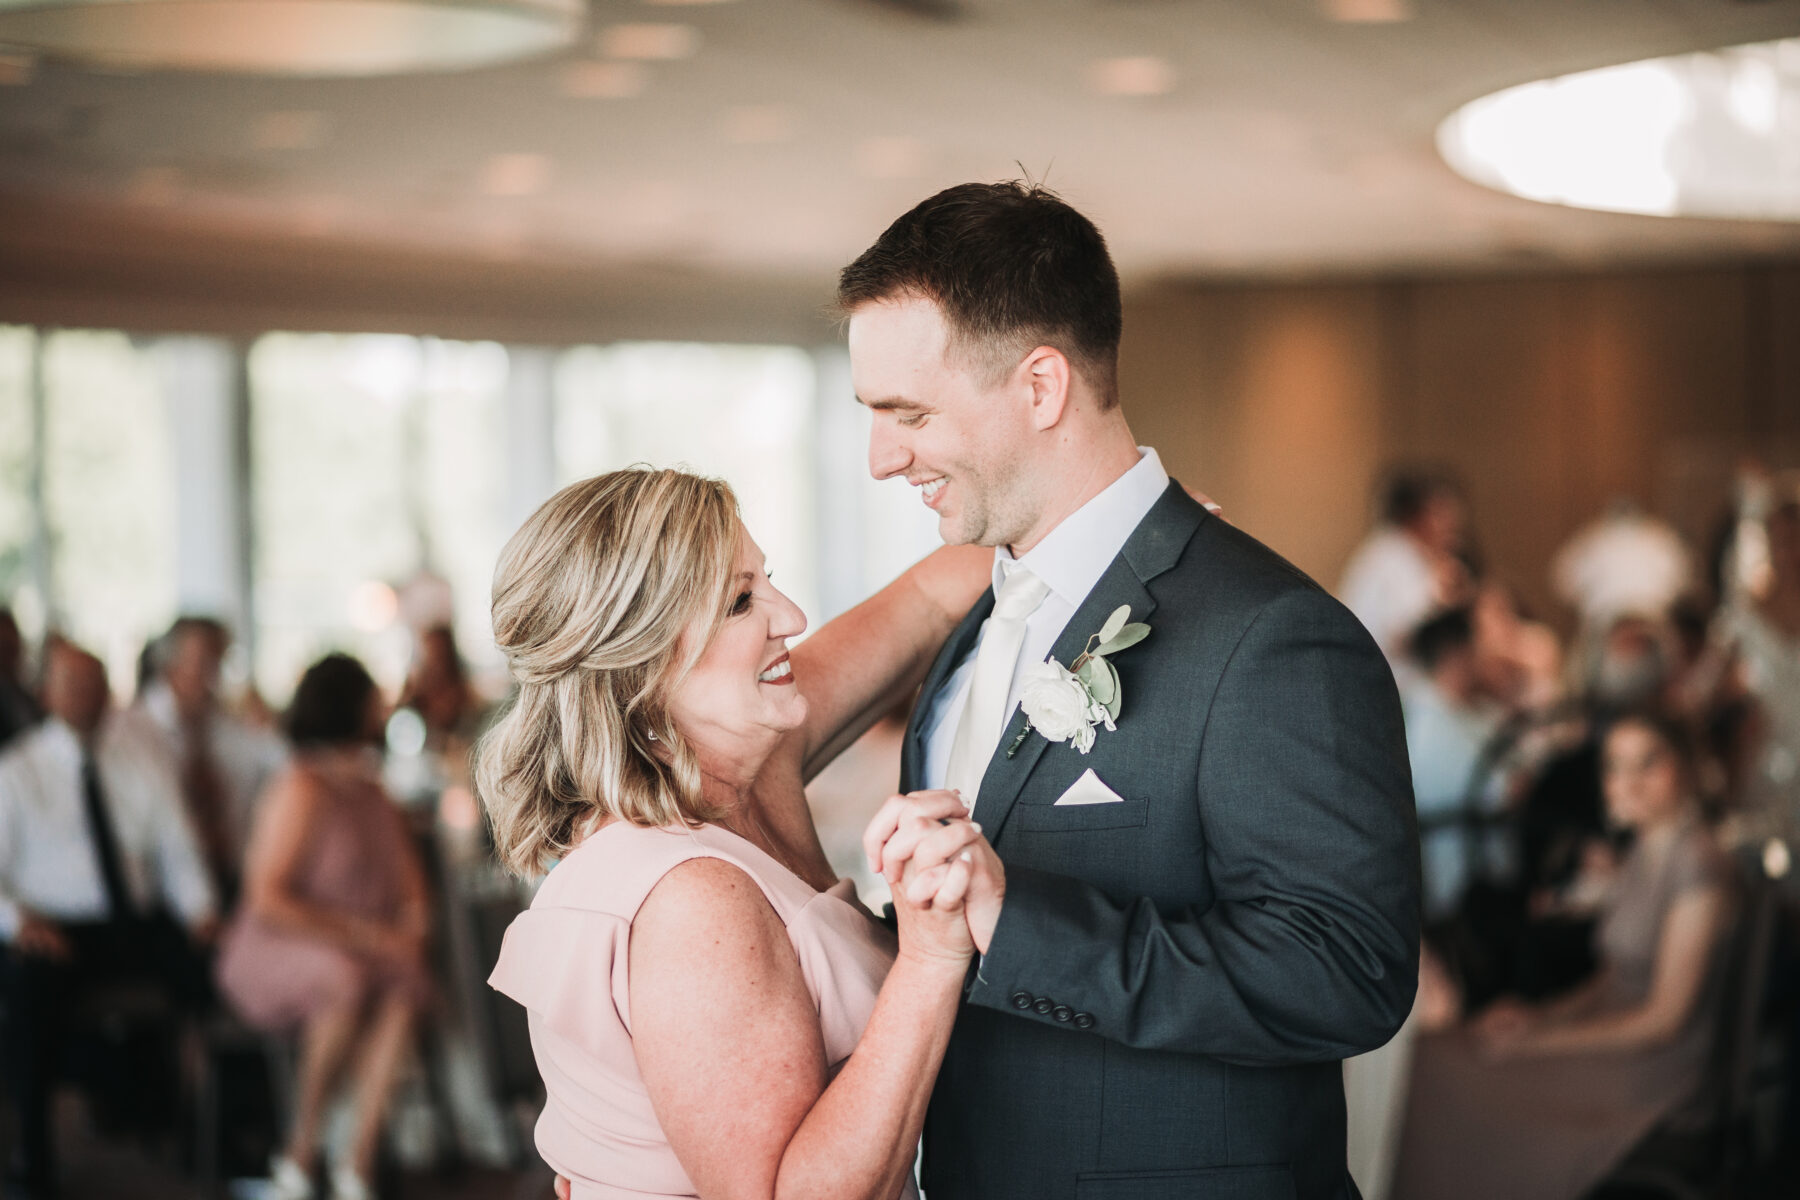 Mother son dance: Romantic Country Club Soiree by Juniper Weddings featured on Nashville Bride Guide